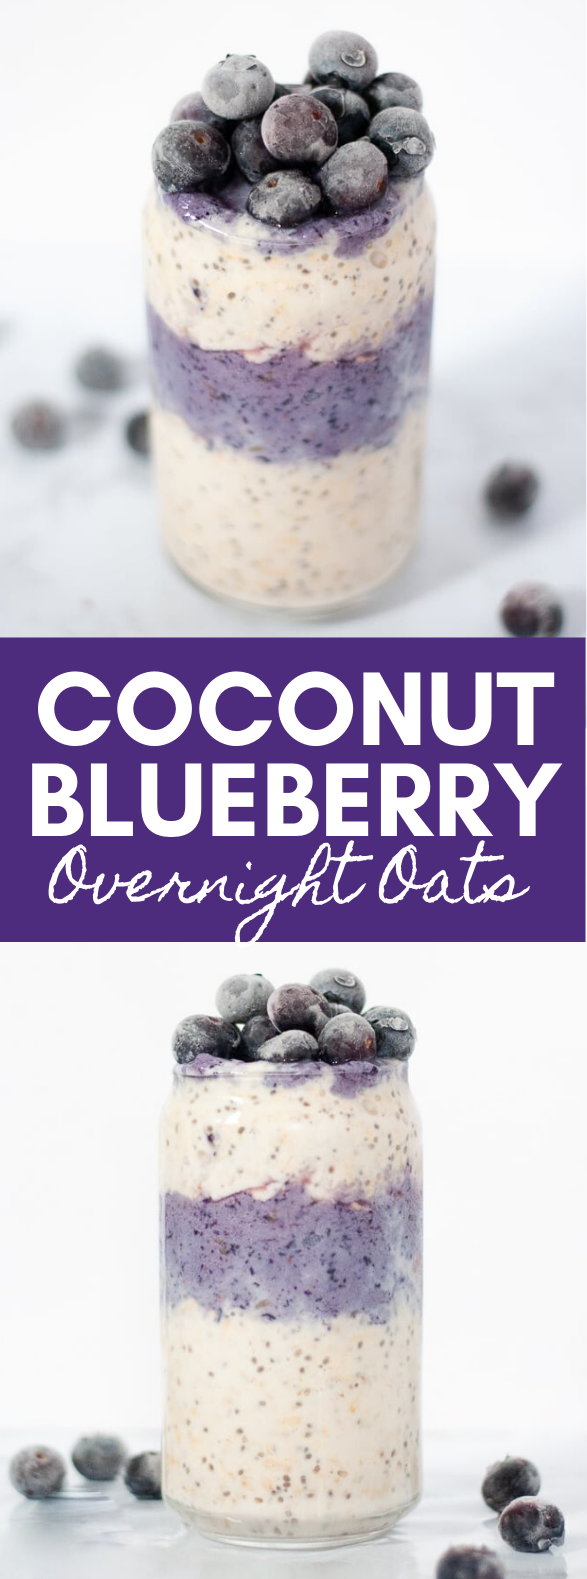 COCONUT BLUEBERRY OVERNIGHT OATS #healthy #breakfast